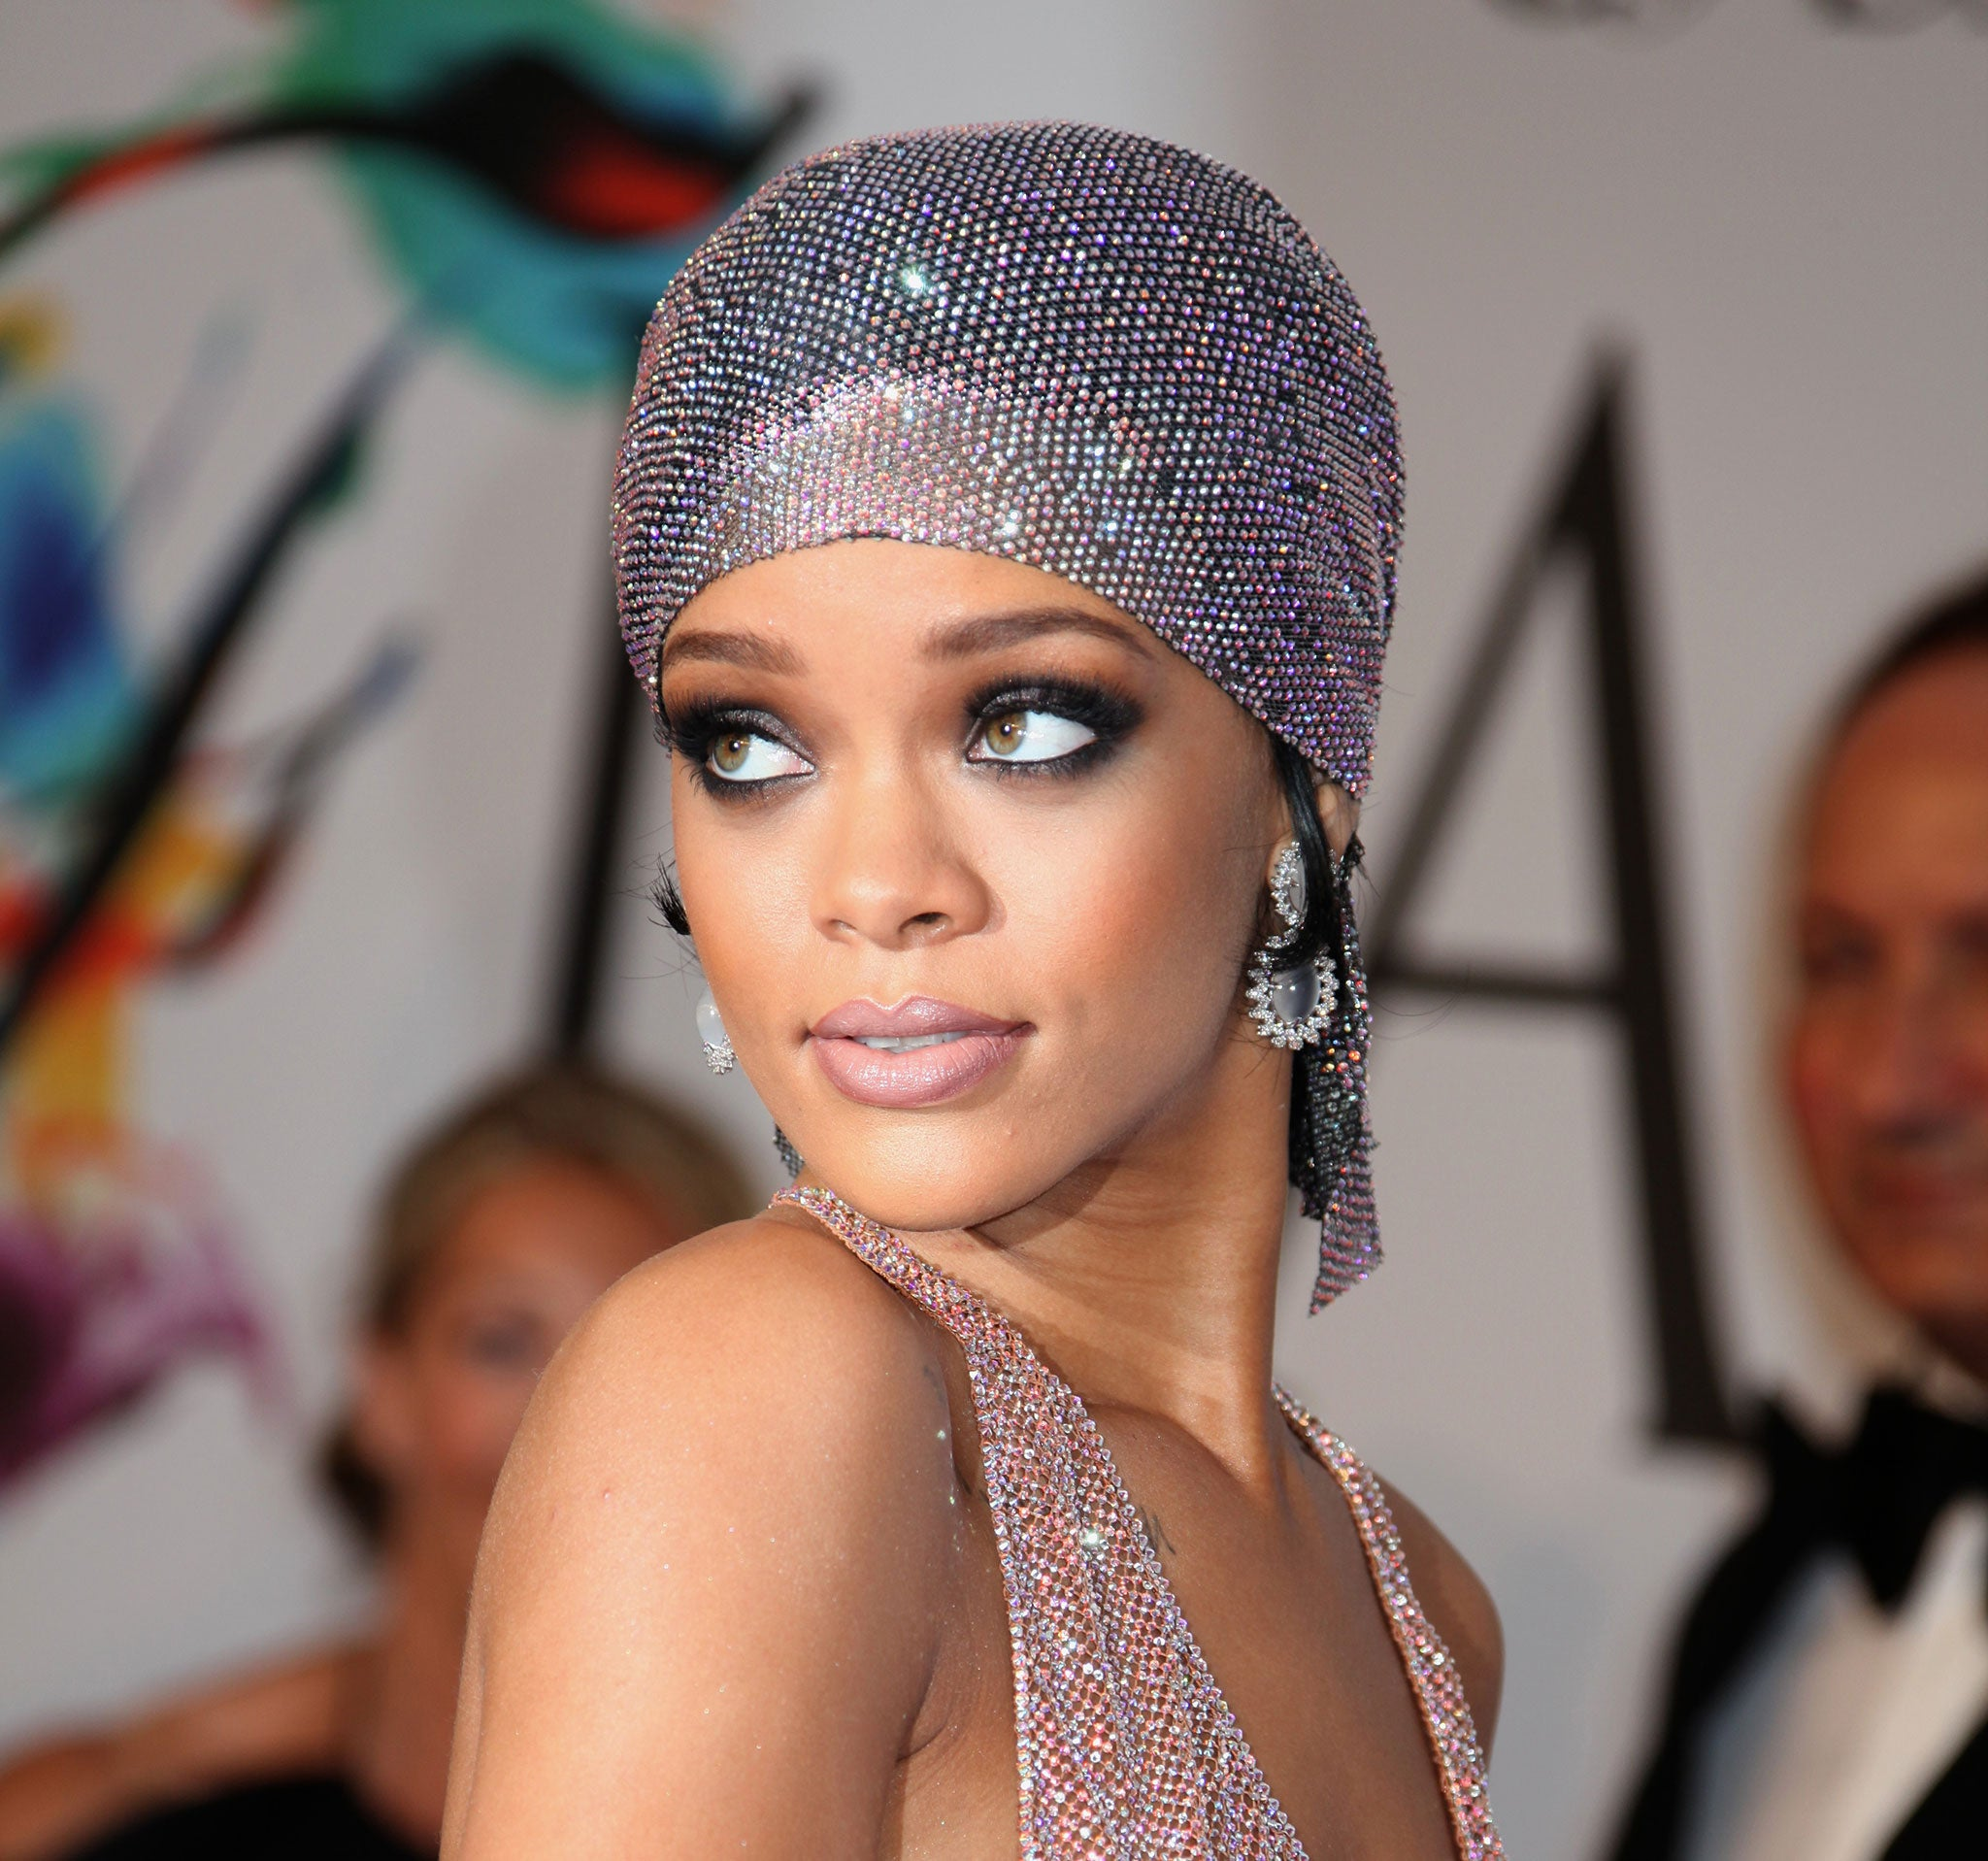 Rihannas practically naked dress: Why it might be one of